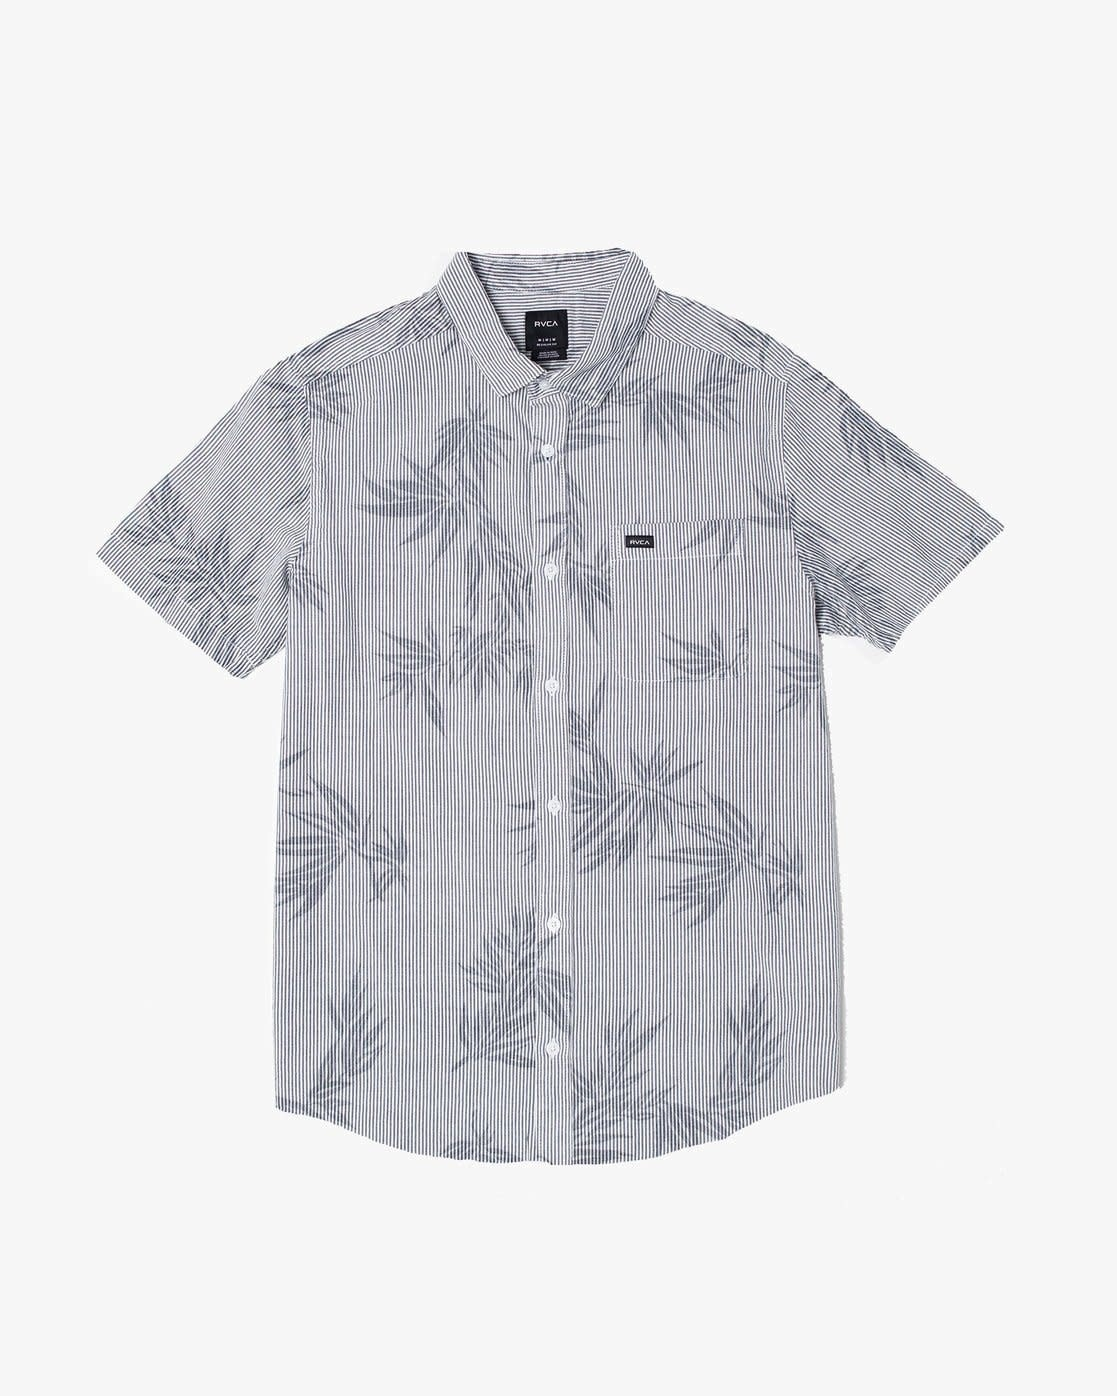 RVCA Richmond SS-1